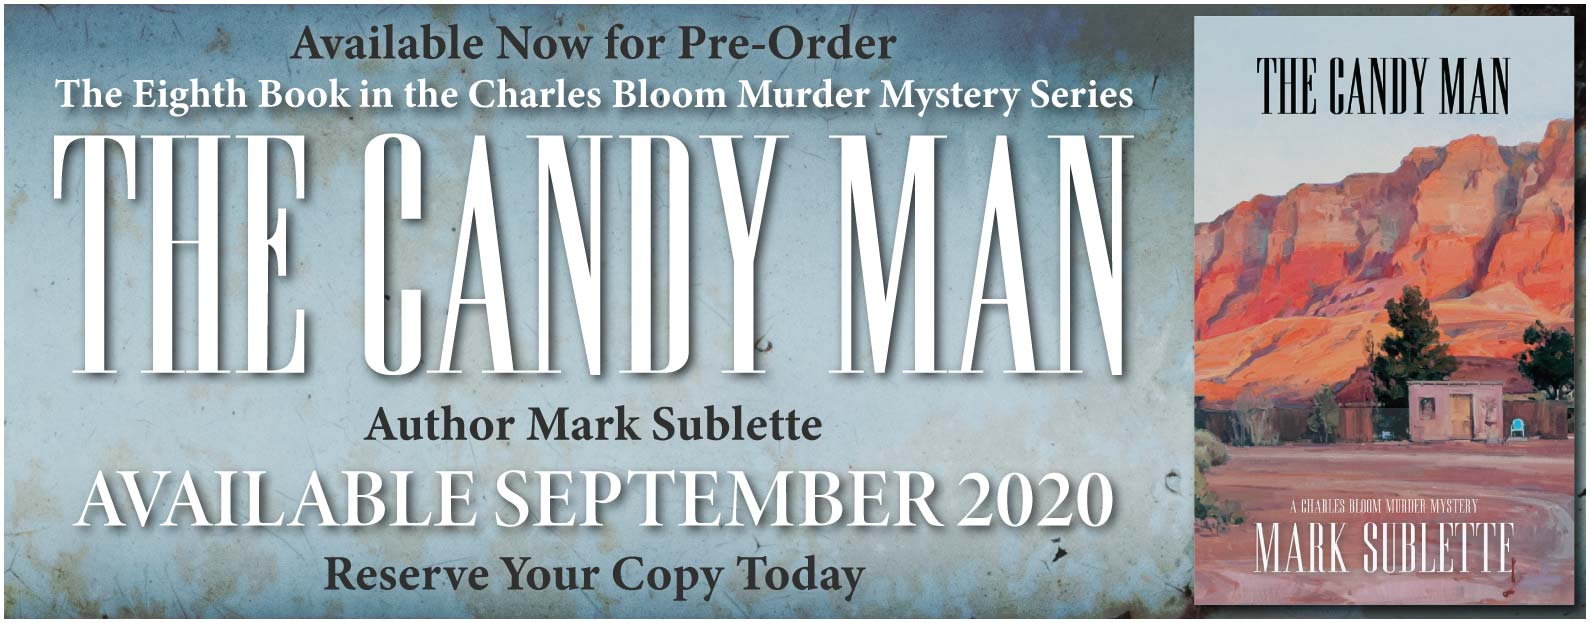 The Candy Man by Mark Sublette Available September 2020